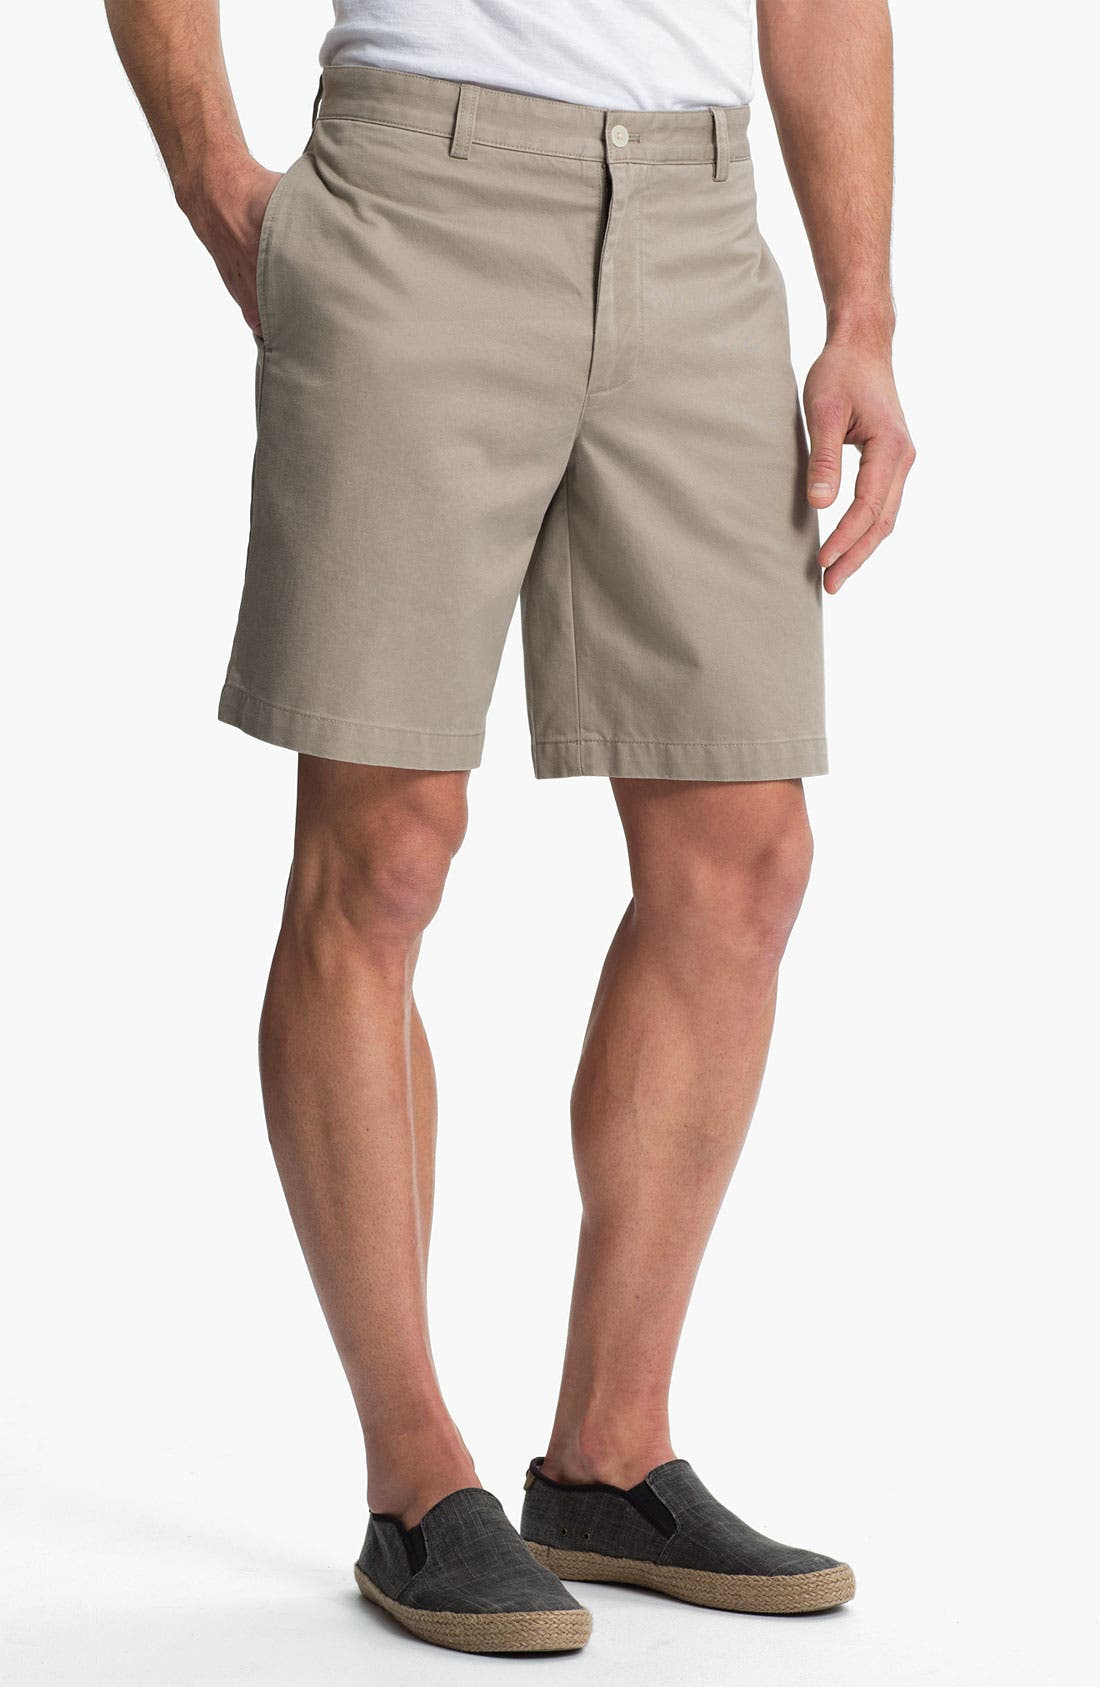 Main Image - Vineyard Vines 'Club' Flat Front Twill Shorts